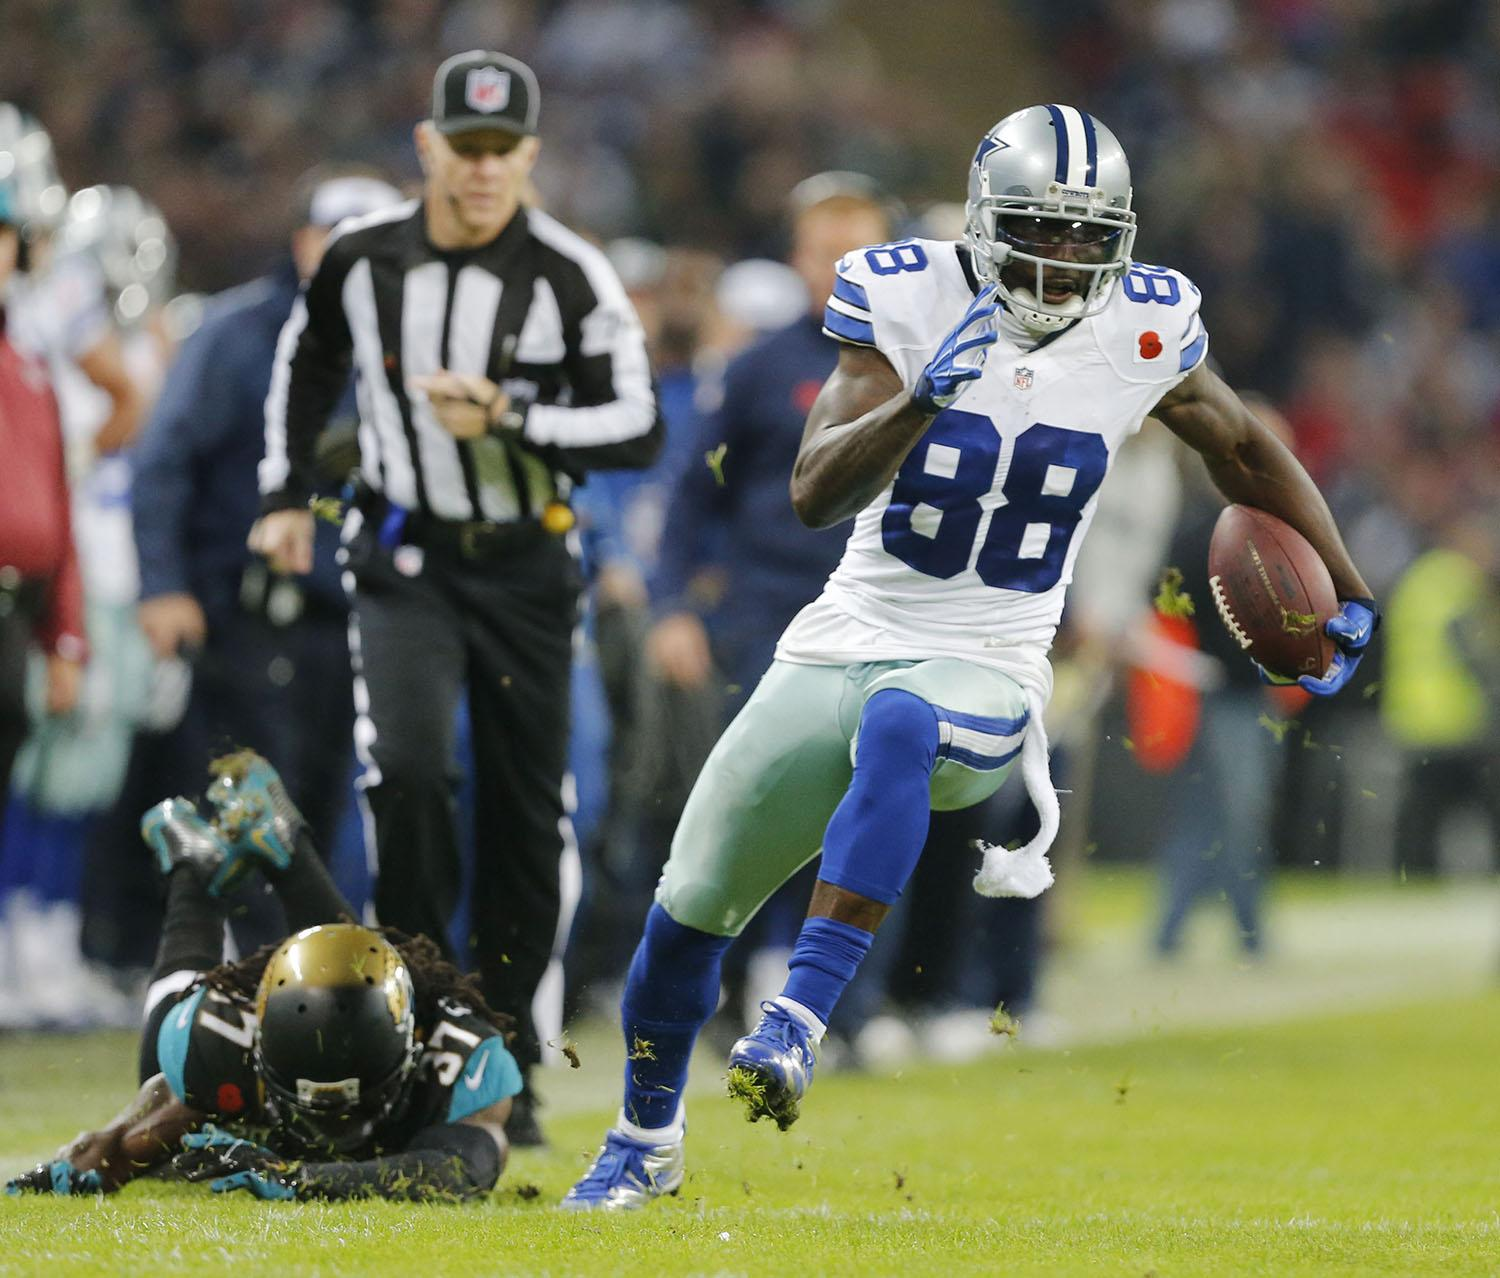 Dez+Bryant+should+look+to+see+a+healthy+amount+of+targets+in+order+to+beat+a+stingy+Eagles+secondary